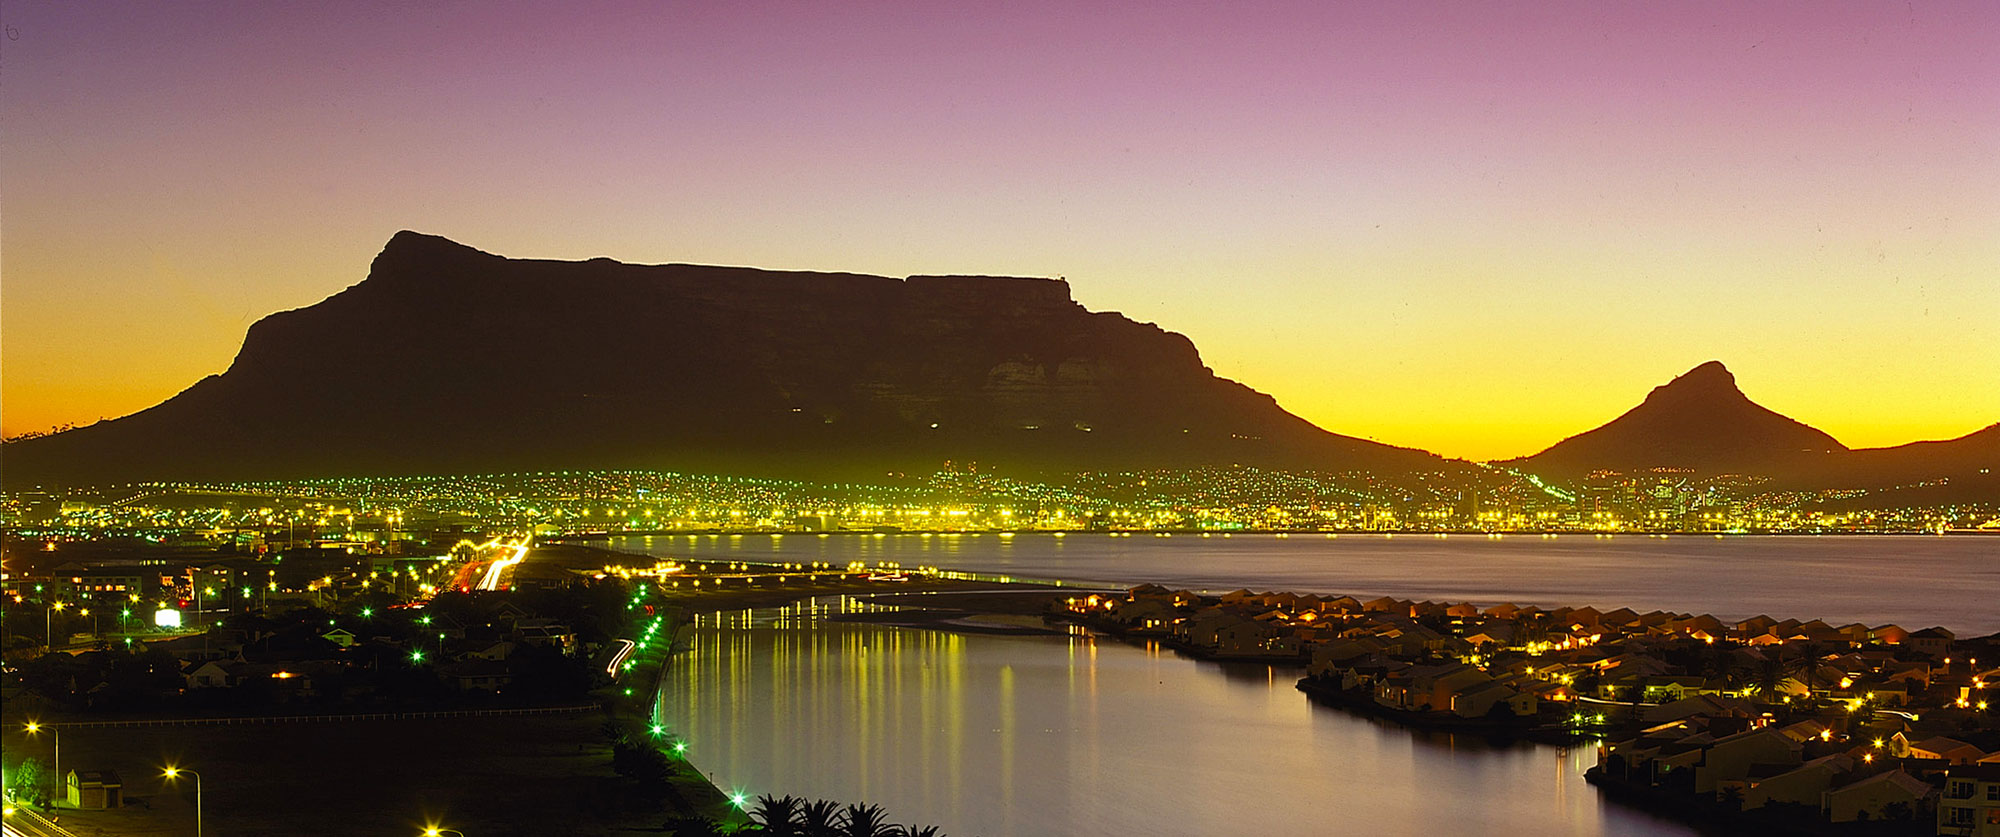 Dherosouthafricacapetowntablemountainnights - Table mountain hotel cape town